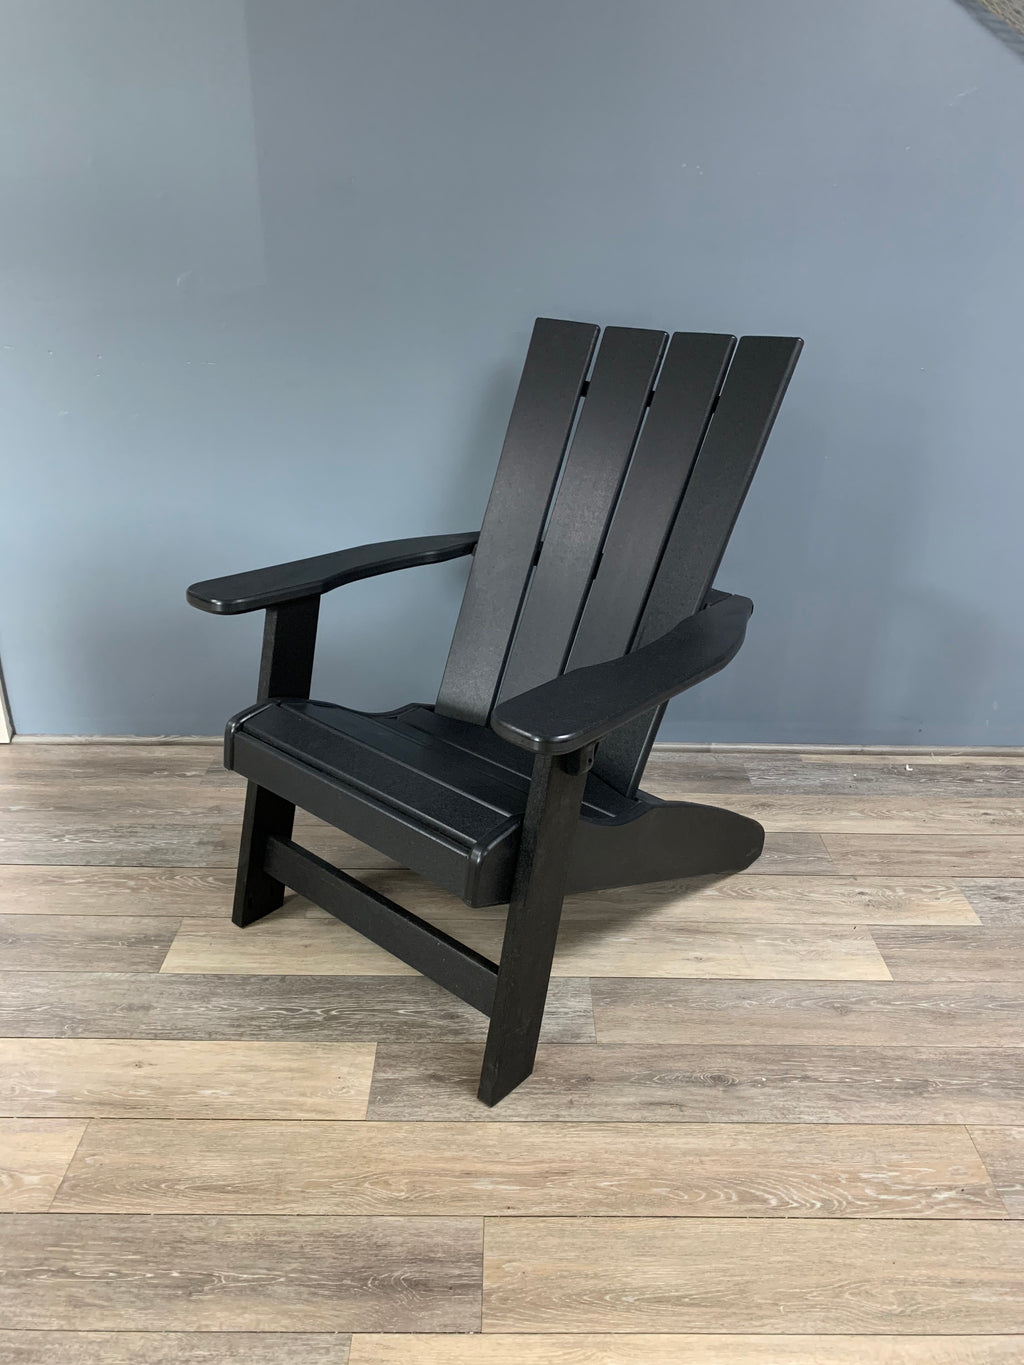 North River Cabo Chair (Premium - Wood Grain Colors)